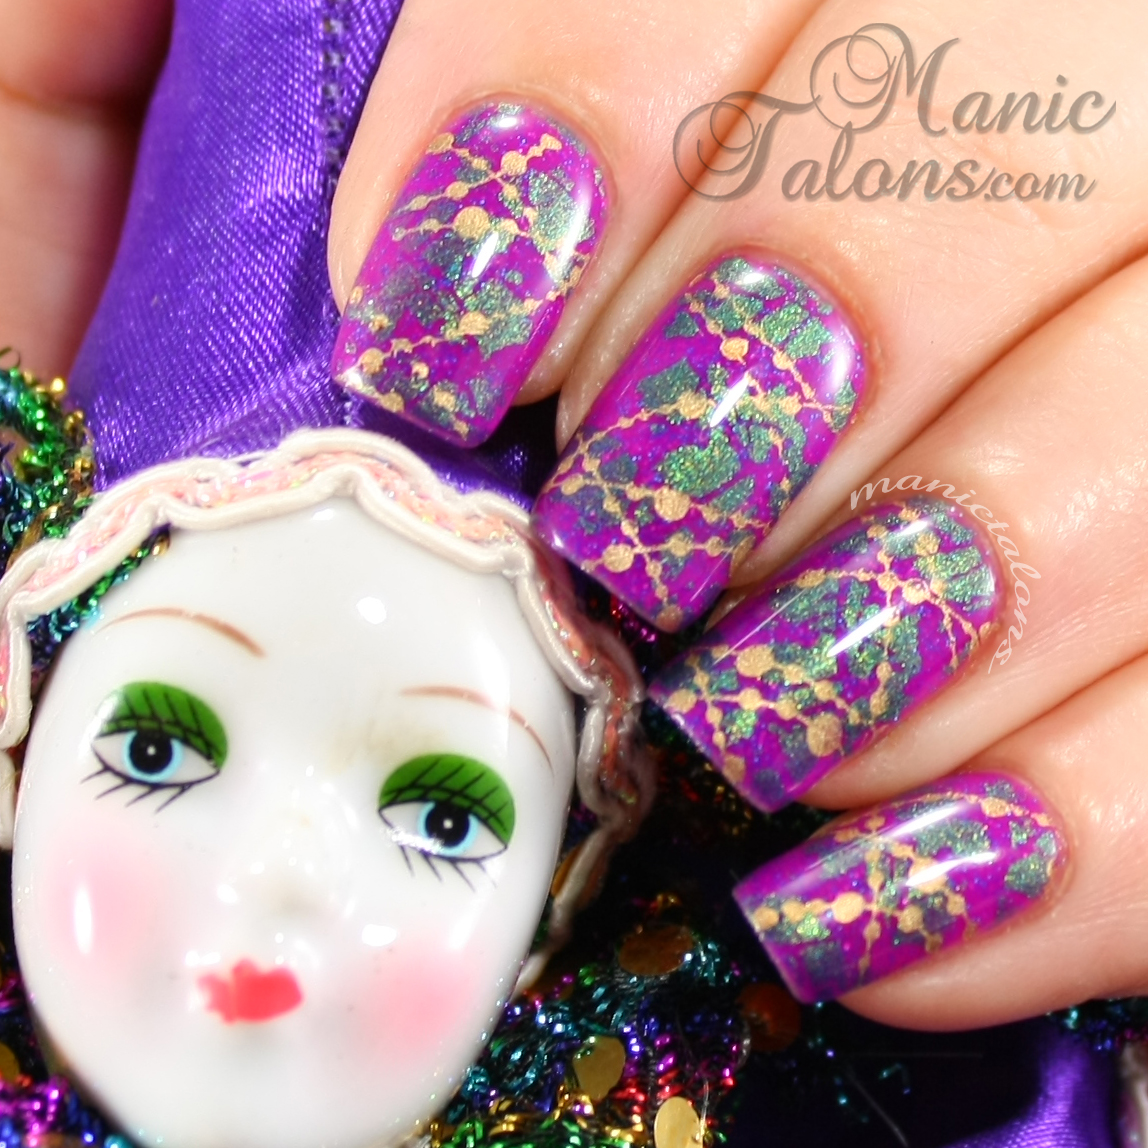 Manic Talons Nail Design: Mardi Gras Nail Art over Gelaze Flying Dragon